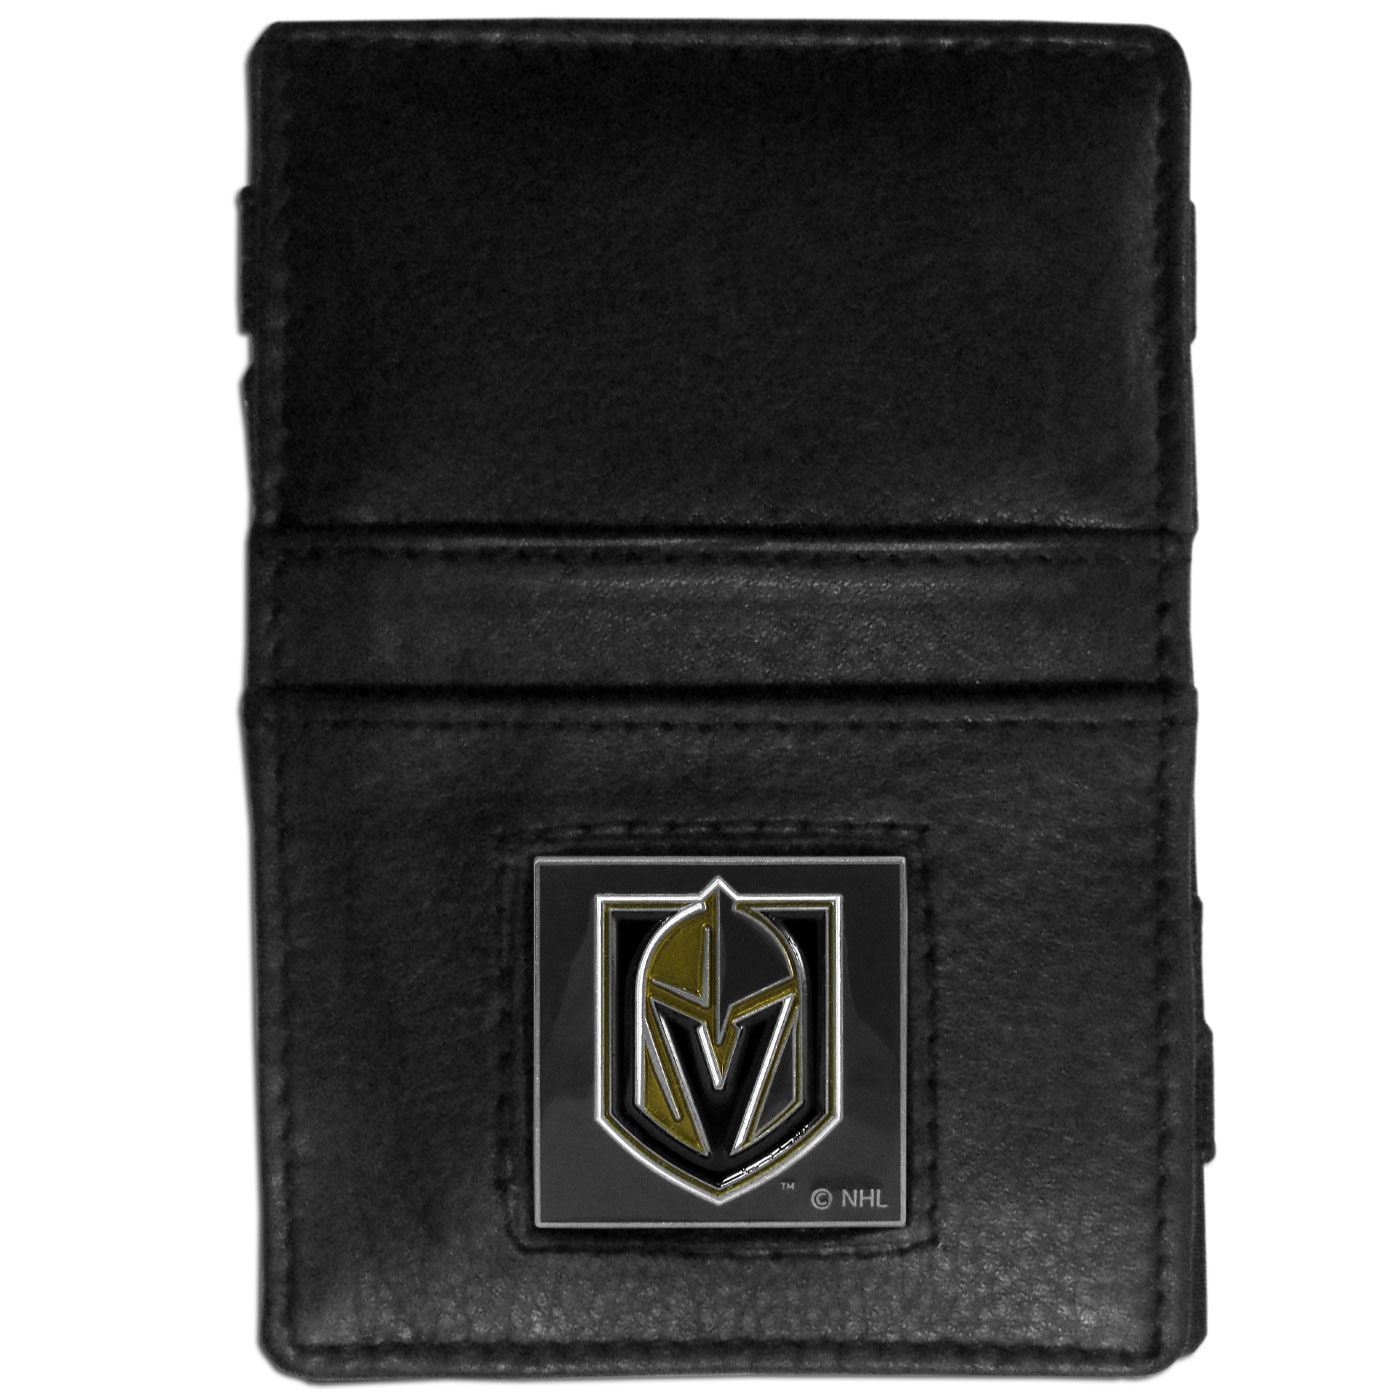 Las Vegas Golden Knights® Leather Jacob's Ladder Wallet - This officially licensed, innovative jacob's ladder wallet design traps cash with just a simple flip of the wallet! There are also outer pockets to store your ID and credit cards. The wallet is made of fine quality leather with a fully cast & enameled Las Vegas Golden Knights® emblem on the front.